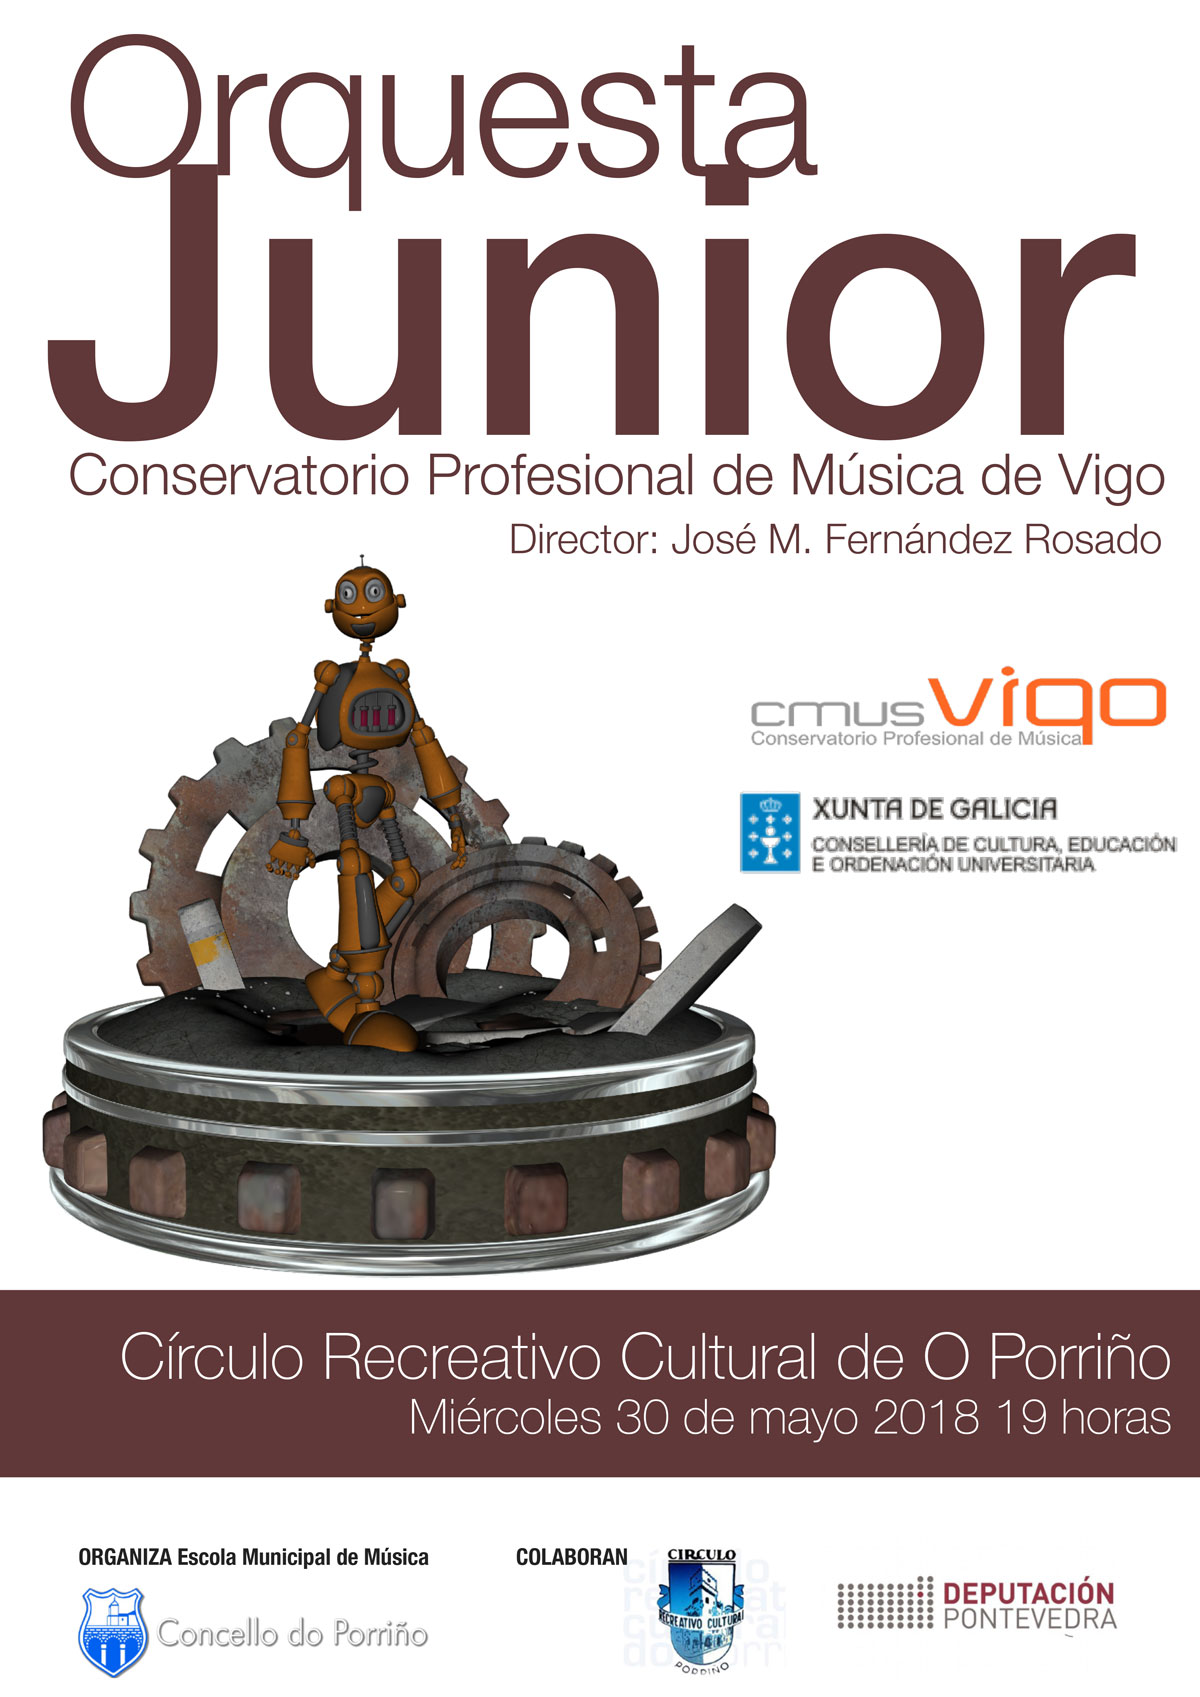 Orquestra Junior do Conservatorio Profesional de Música de Vigo